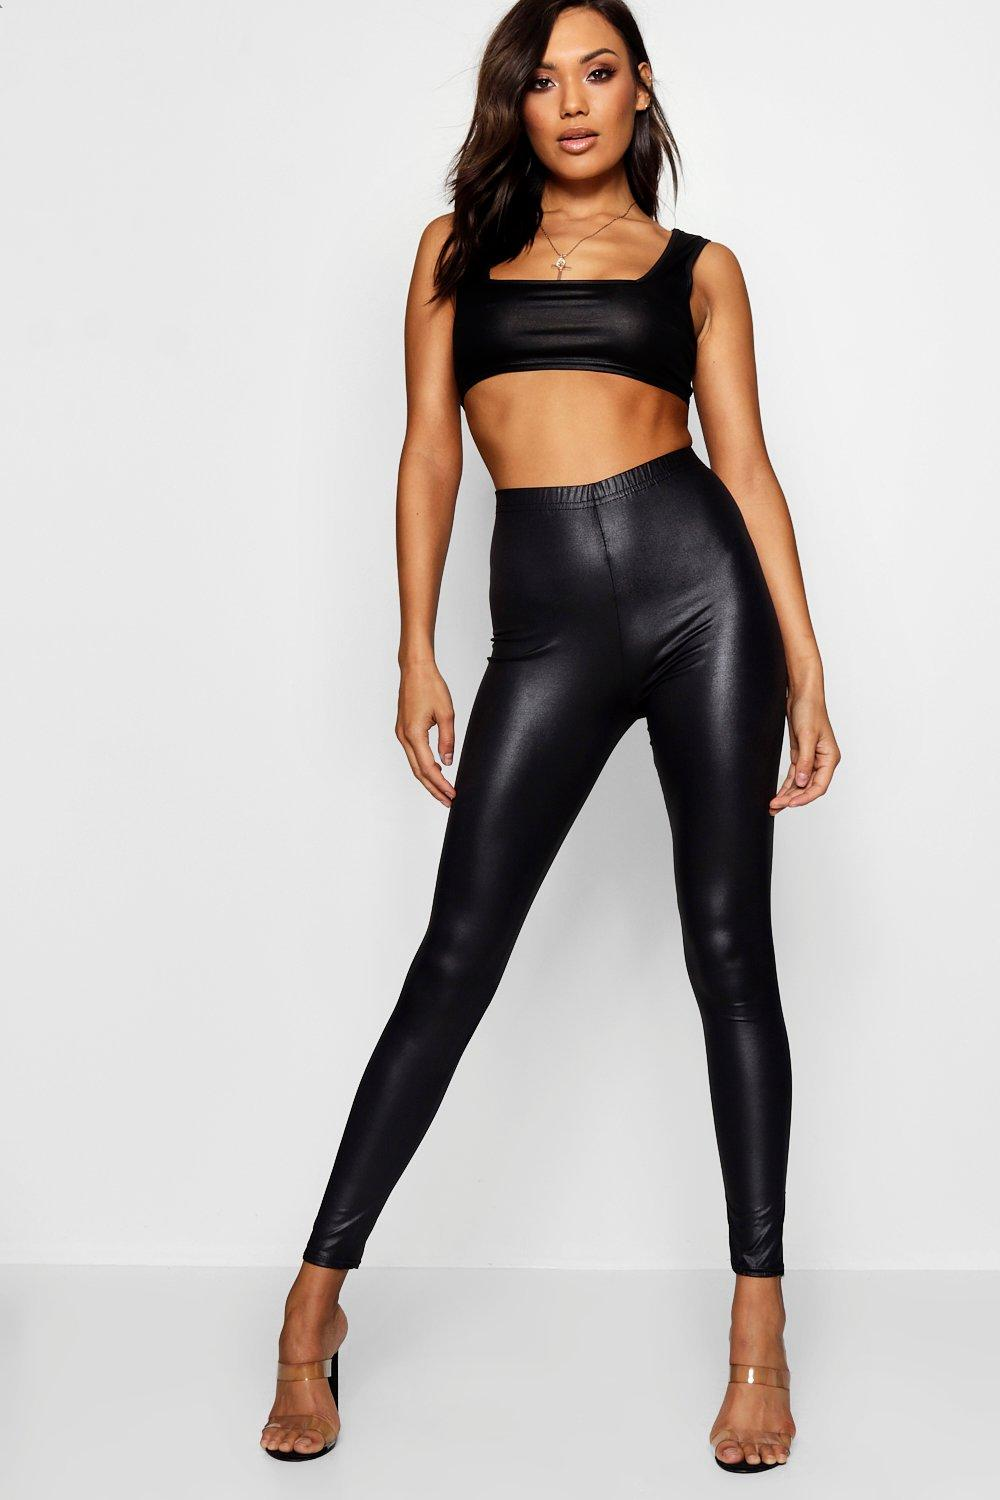 Find great deals on eBay for wet look leggings. Shop with confidence. Skip to main content. eBay: Shop by category. New Fahion Womens Faux Leather High Waist Leggings Pants Wet Look US Stock AM. Brand New · Unbranded. $ Buy It Now. Free Shipping. + Sold. SPONSORED.